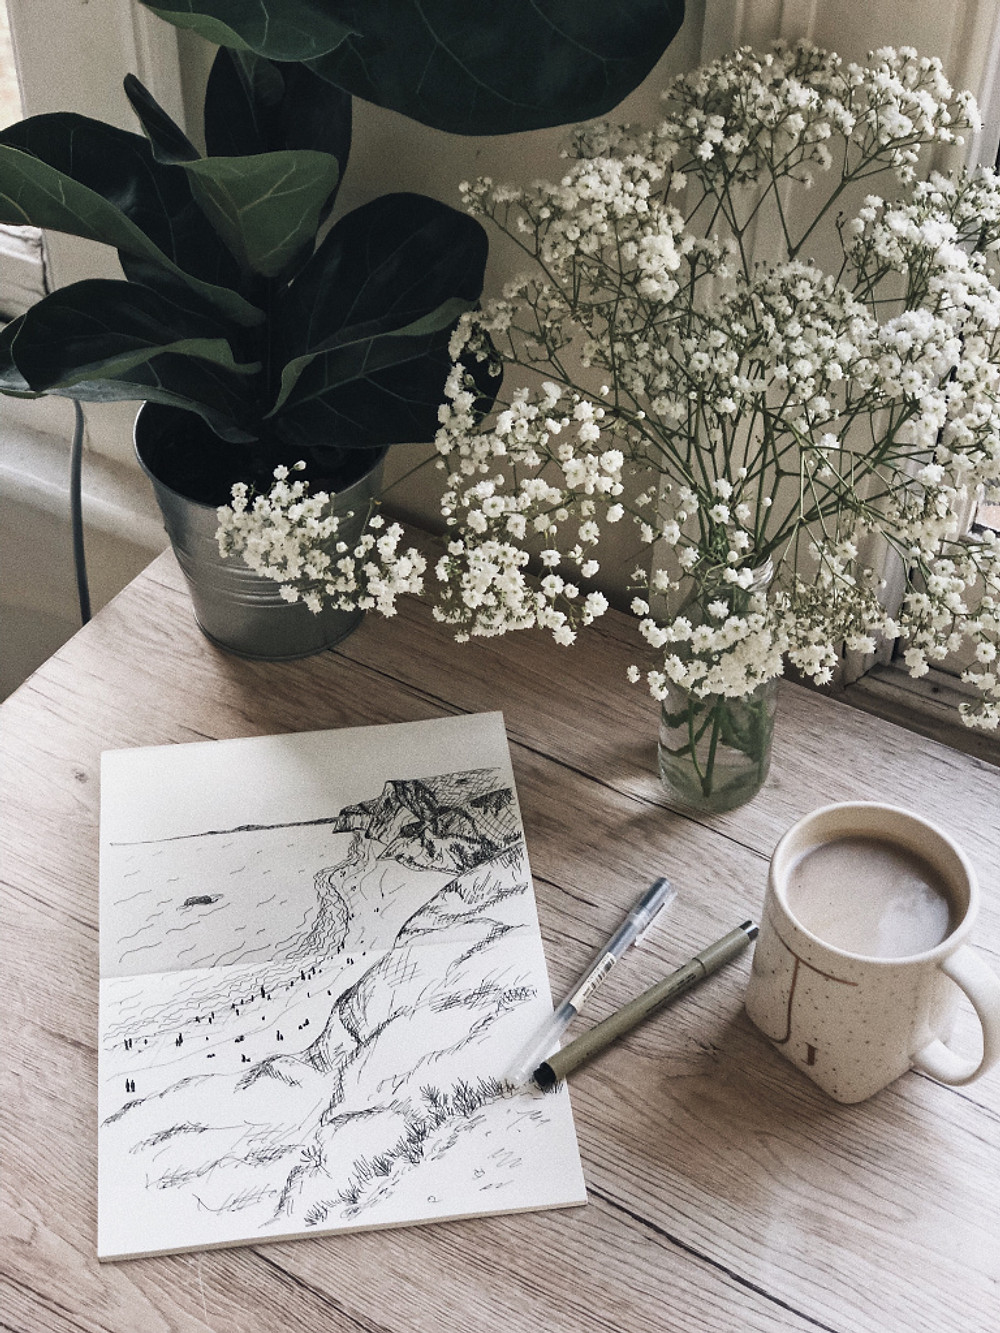 Too Many Plants Blog - Creativity and burnout